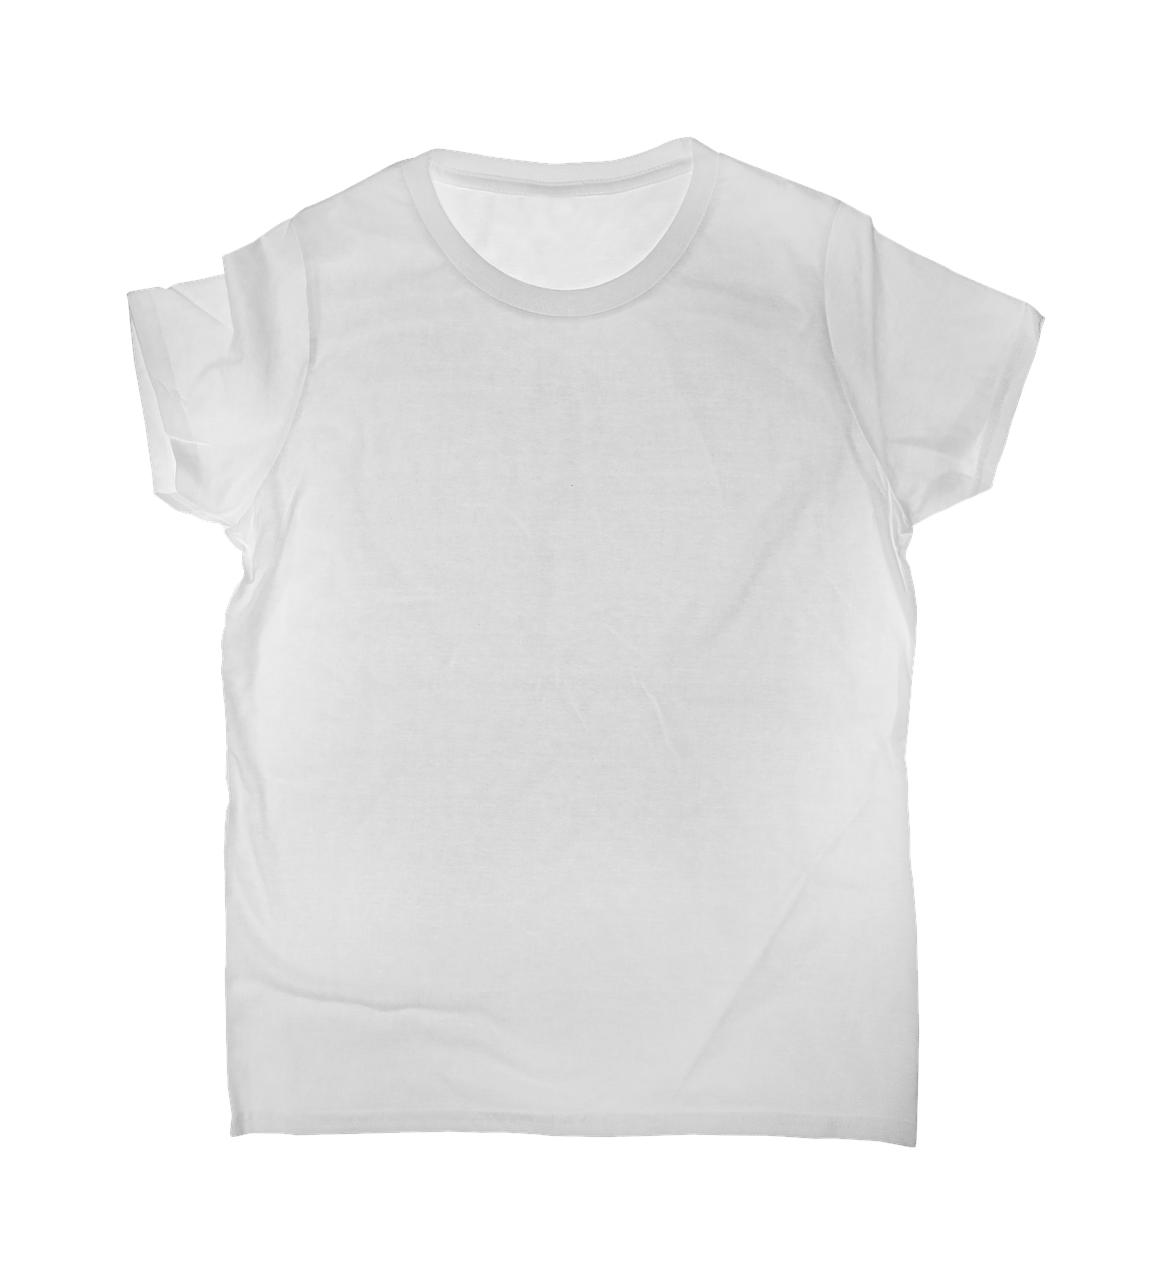 white,shirt,png,transparent,tshirt,t-shirt,tee,unisex,cropped,free pictures, free photos, free images, royalty free, free illustrations, public domain